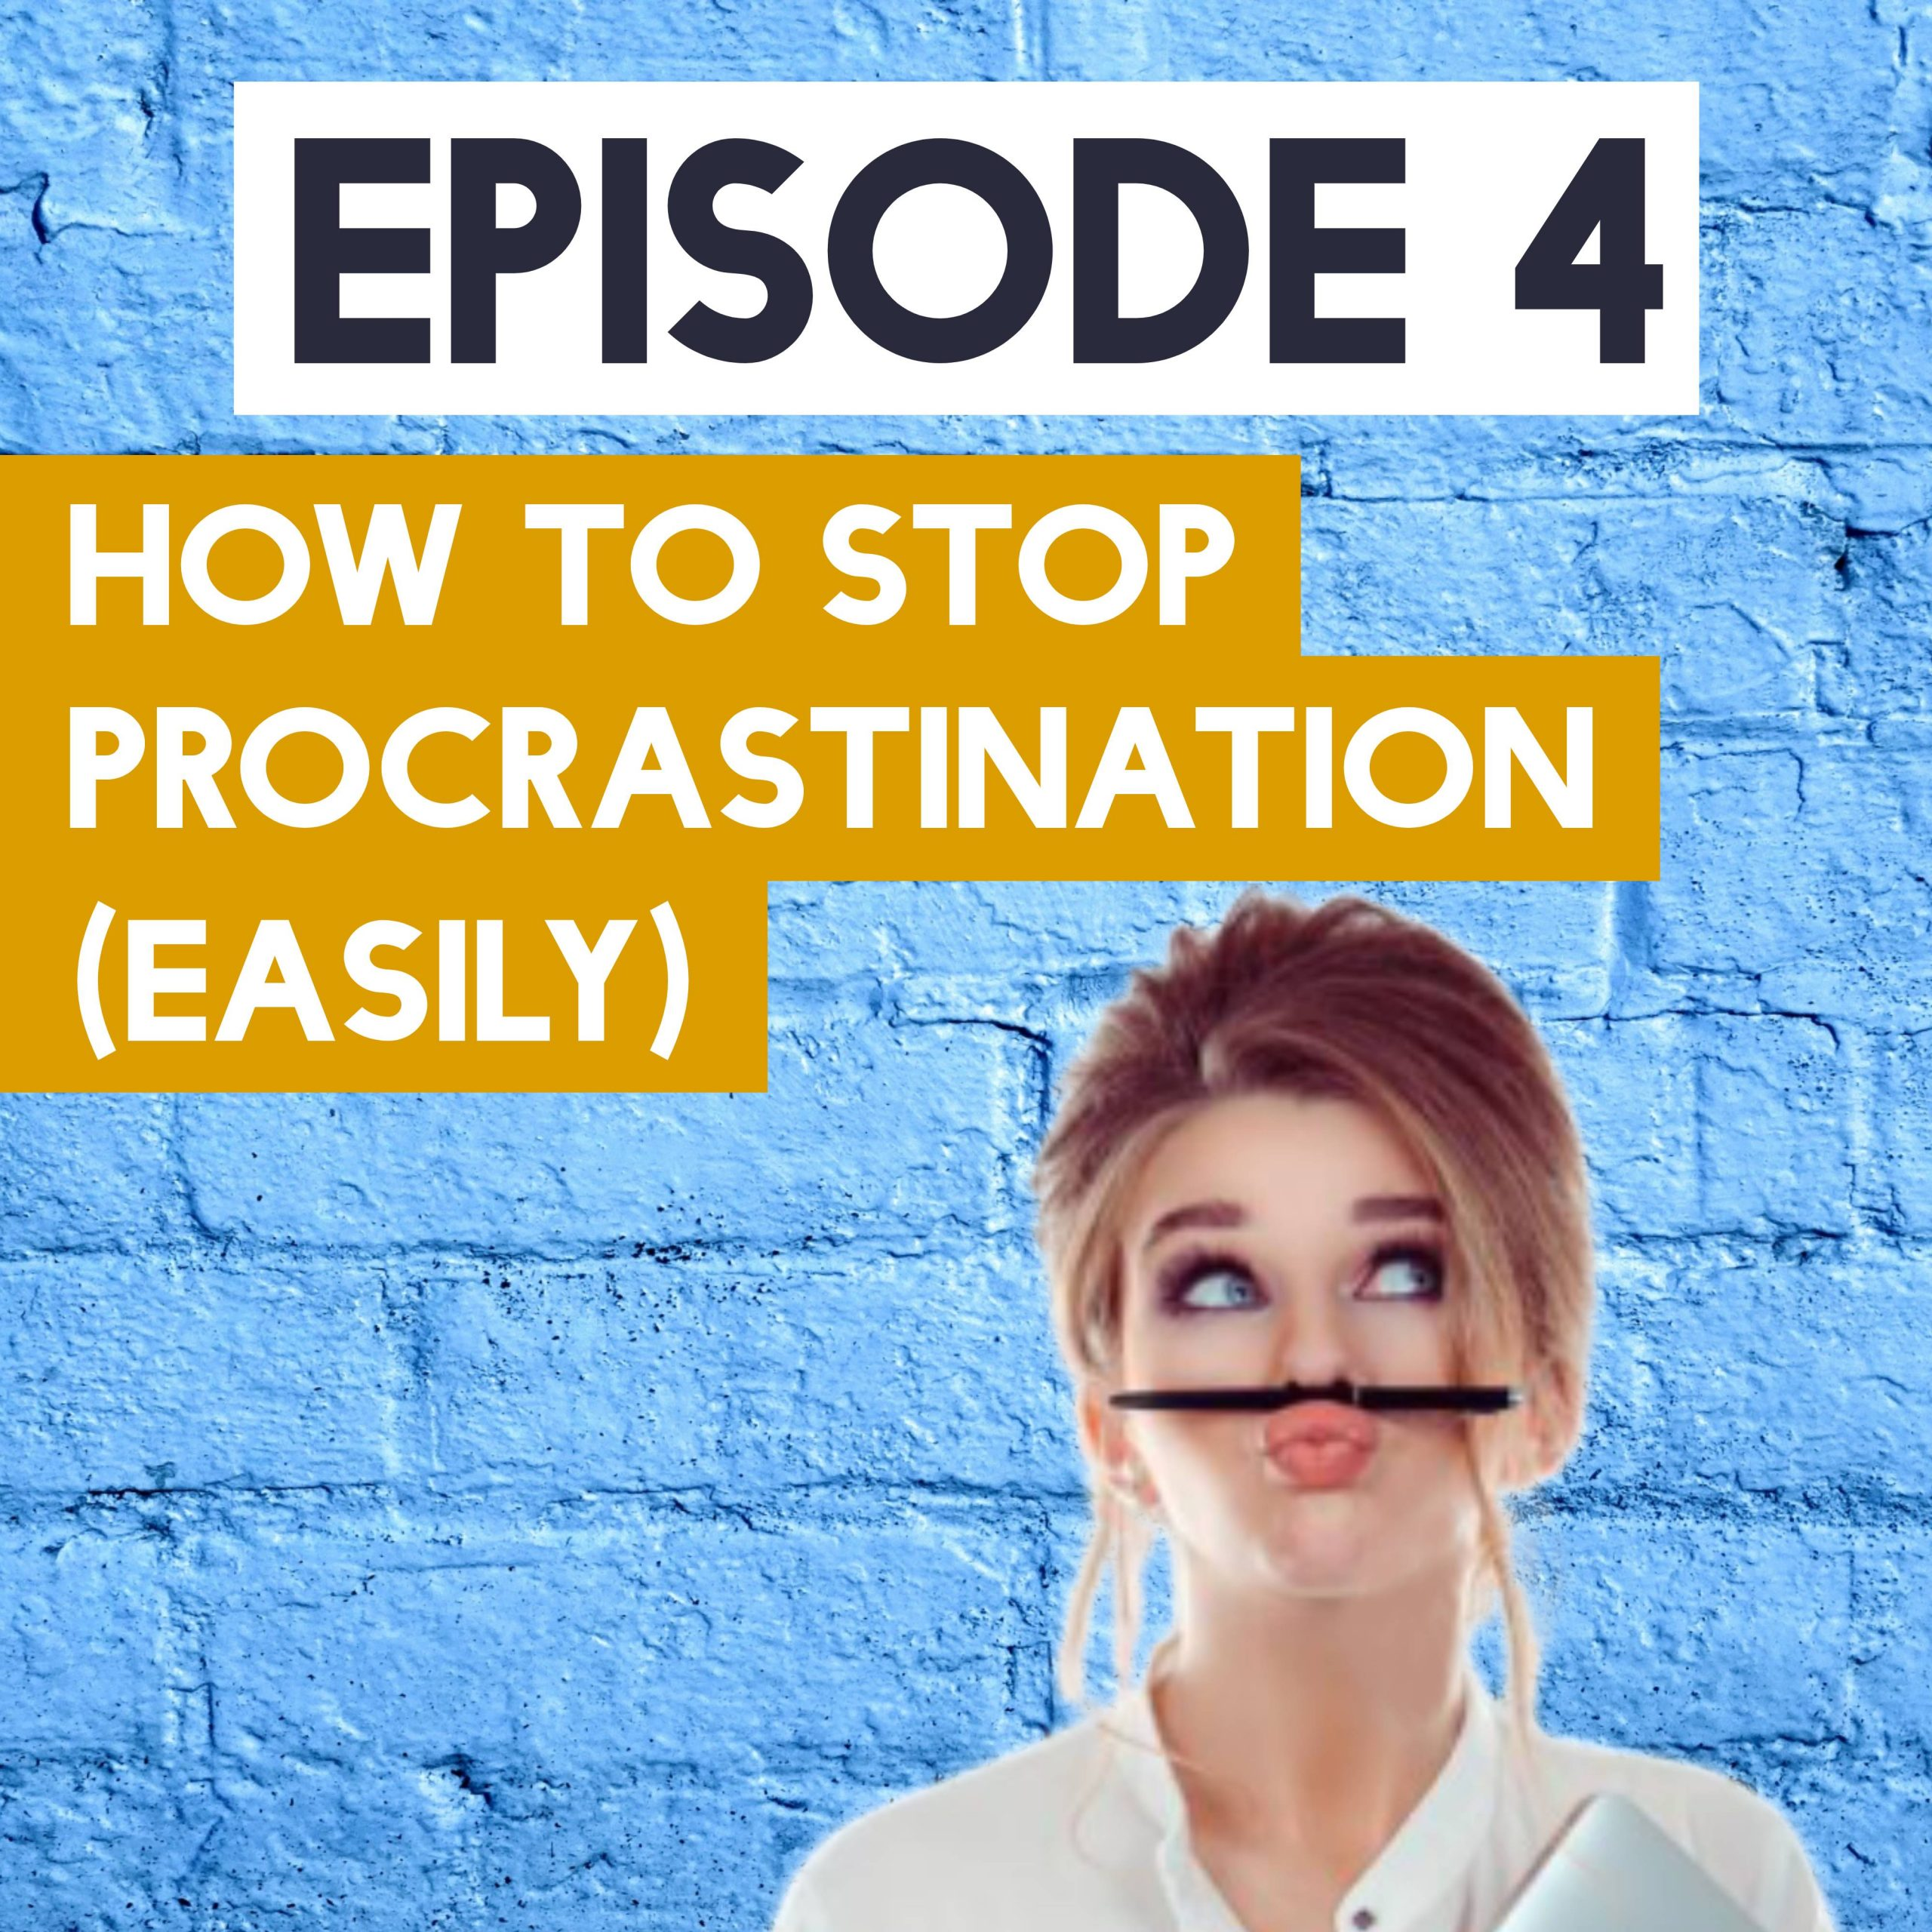 How To Stop Procrastination Easily - Marketing Made Easy with Cham Tang Podcast Episode 4 image